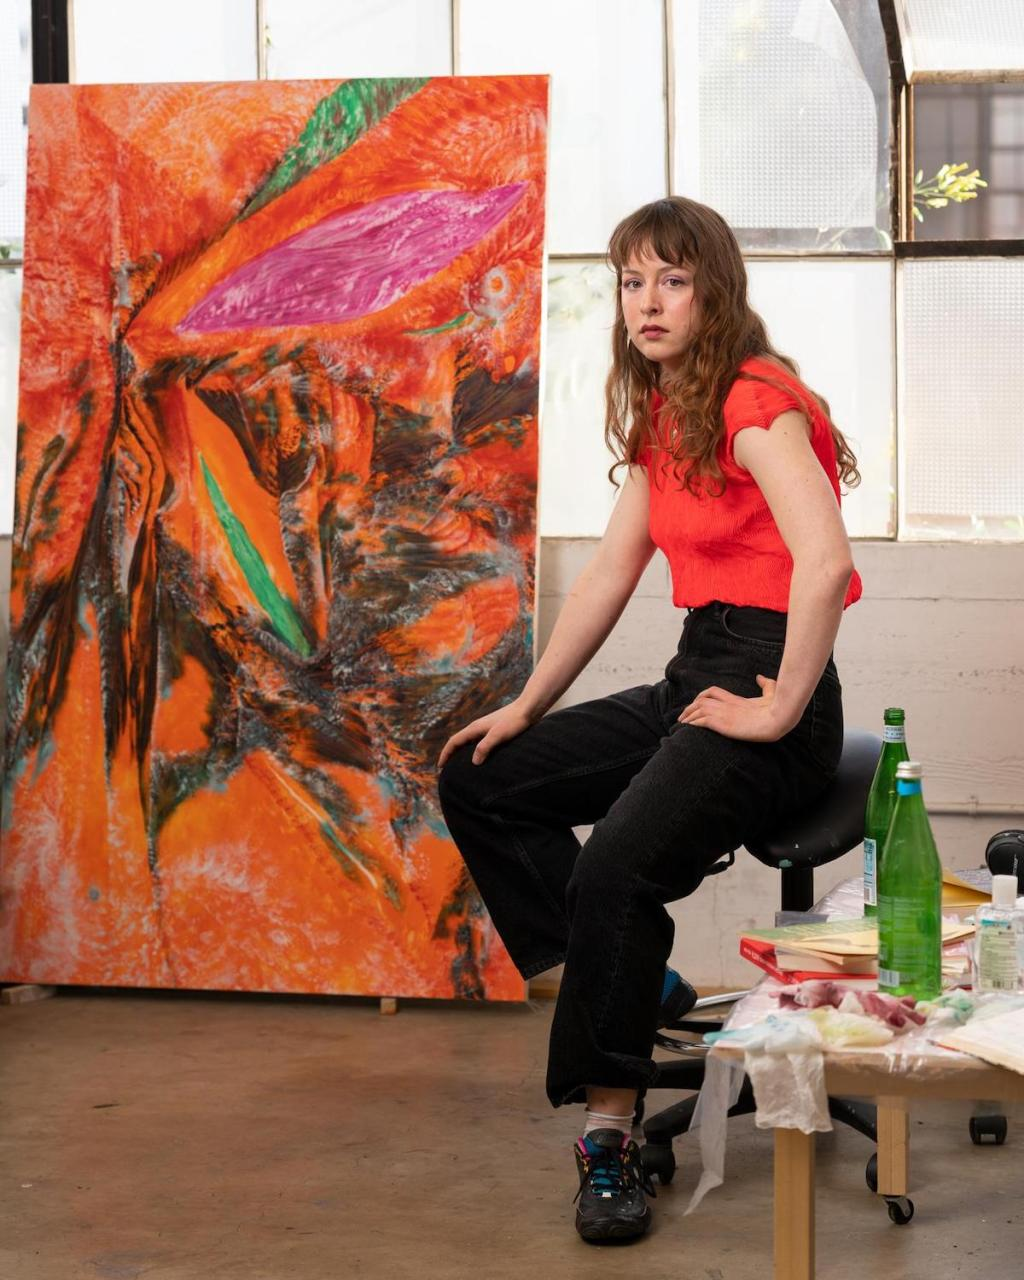 ARTnews in Brief: David Kordansky Gallery Now Represents Lucy Bull—and More from March 8, 2021